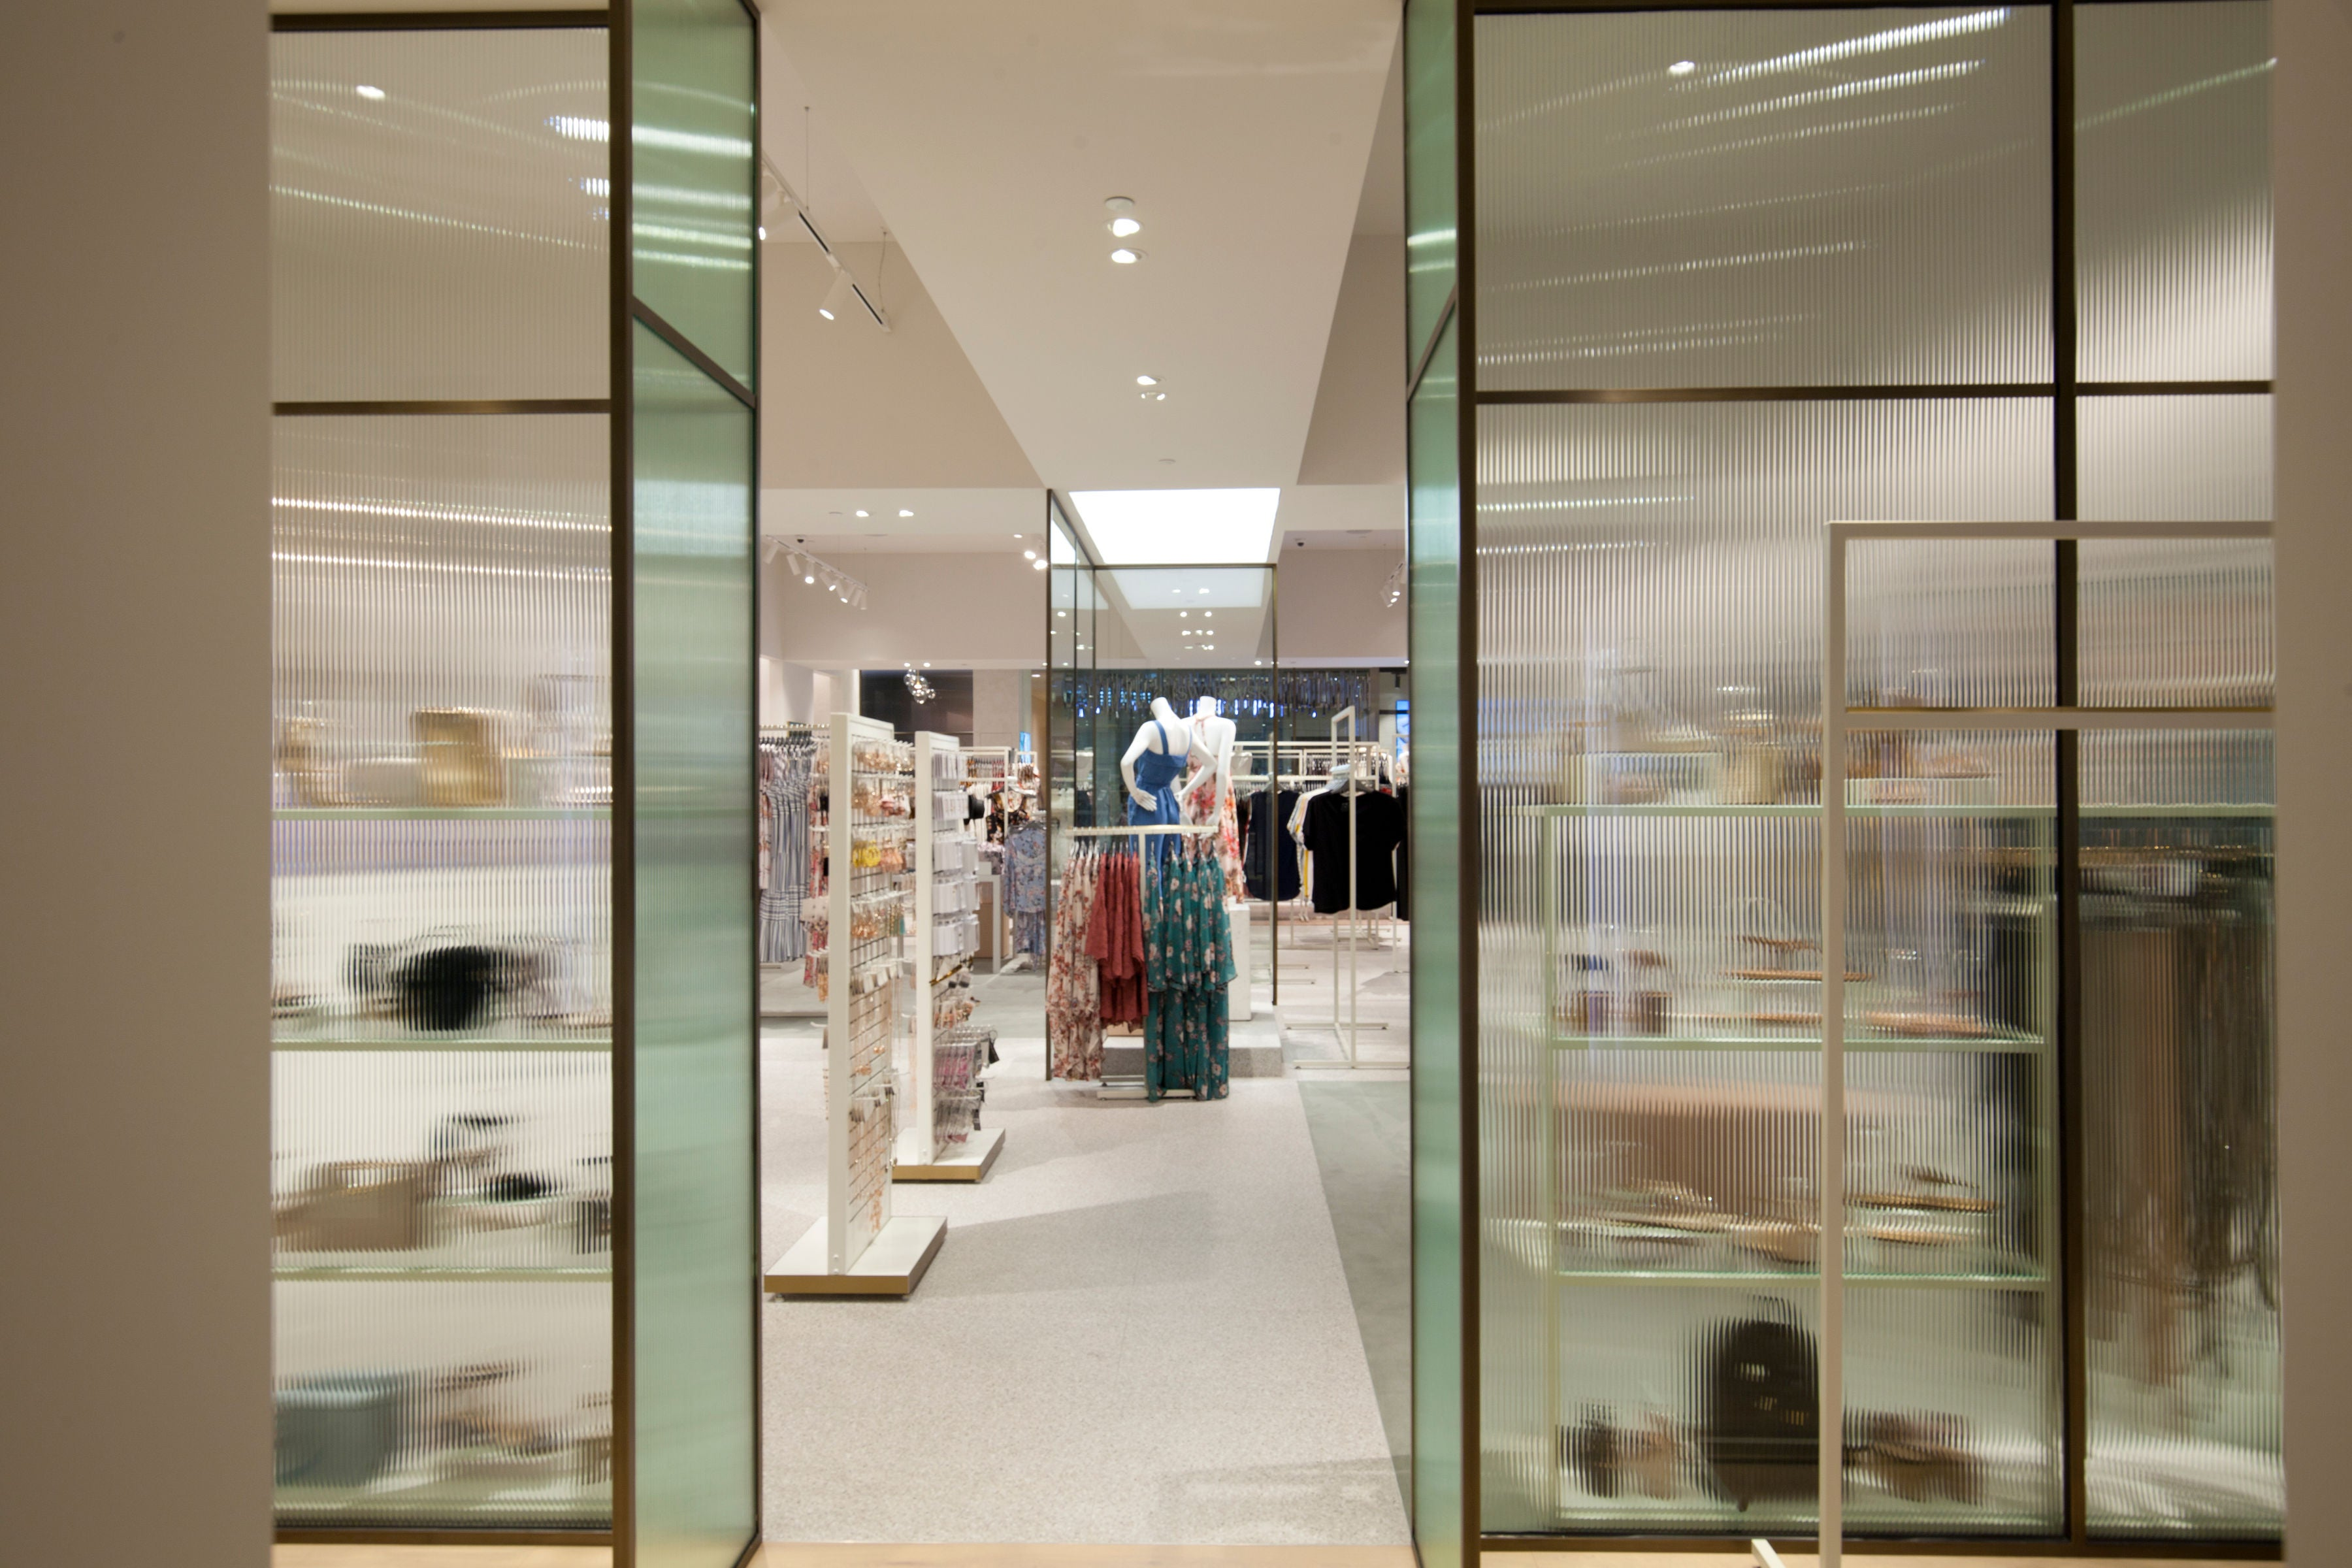 Image of interior of store